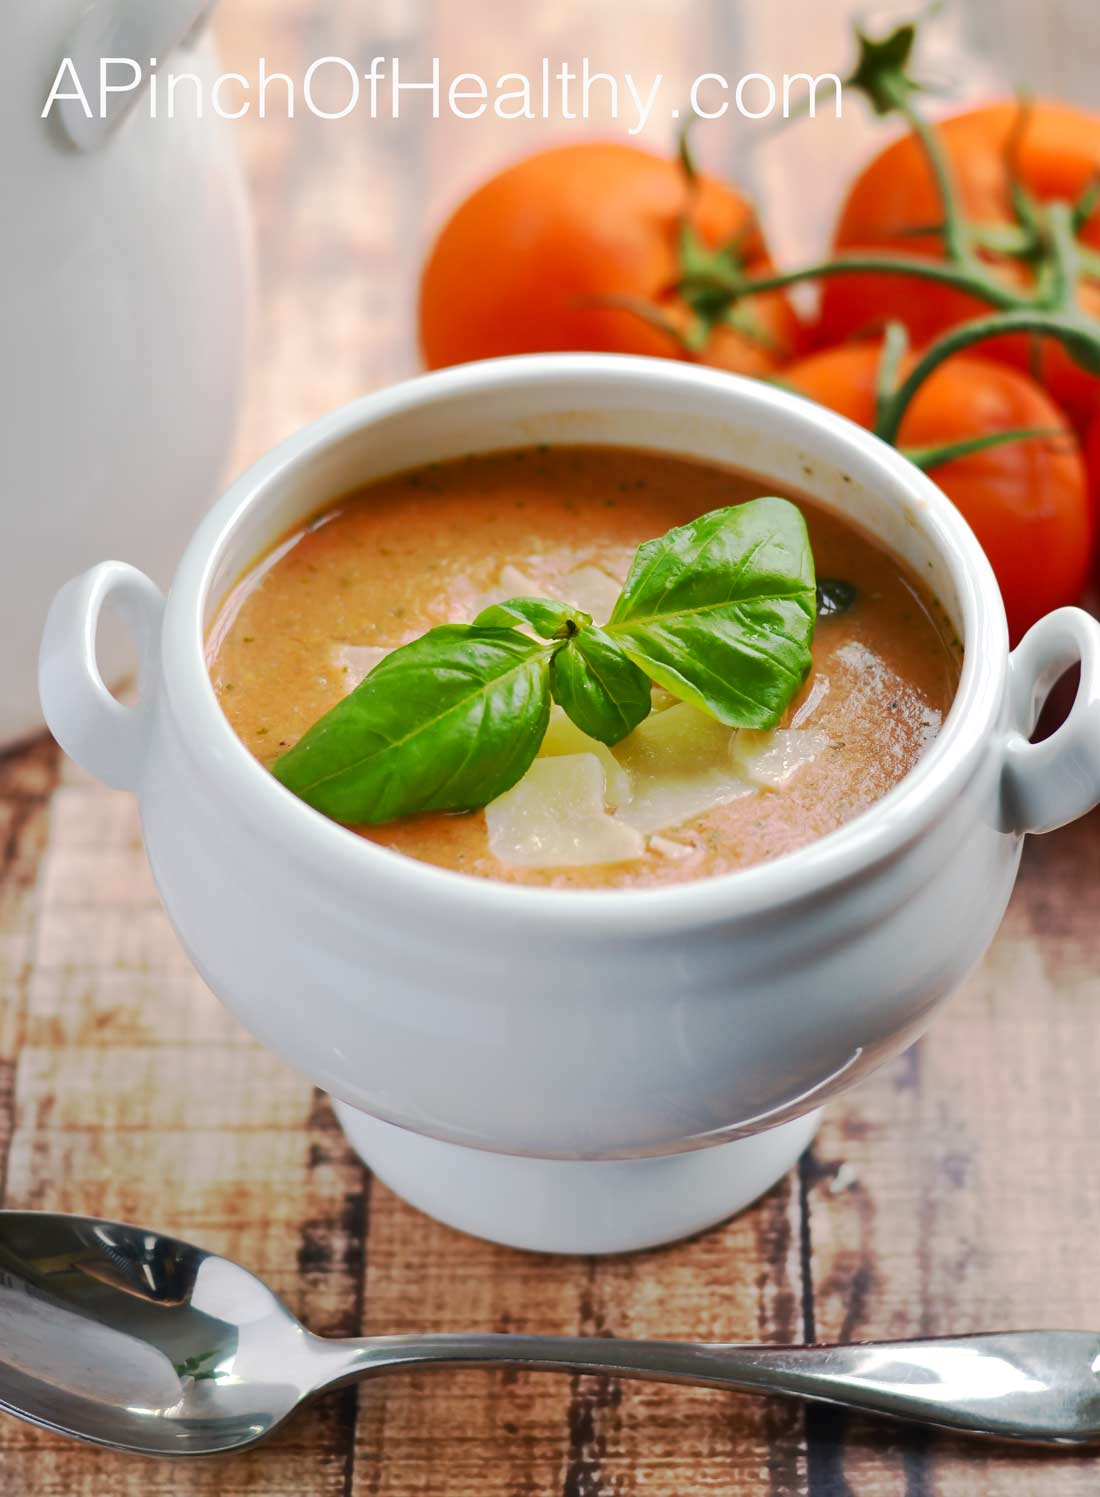 Easy Tomato Basil Soup - 20 minutes and 7 ingredients are all you need! | APinchOfHealthy.com